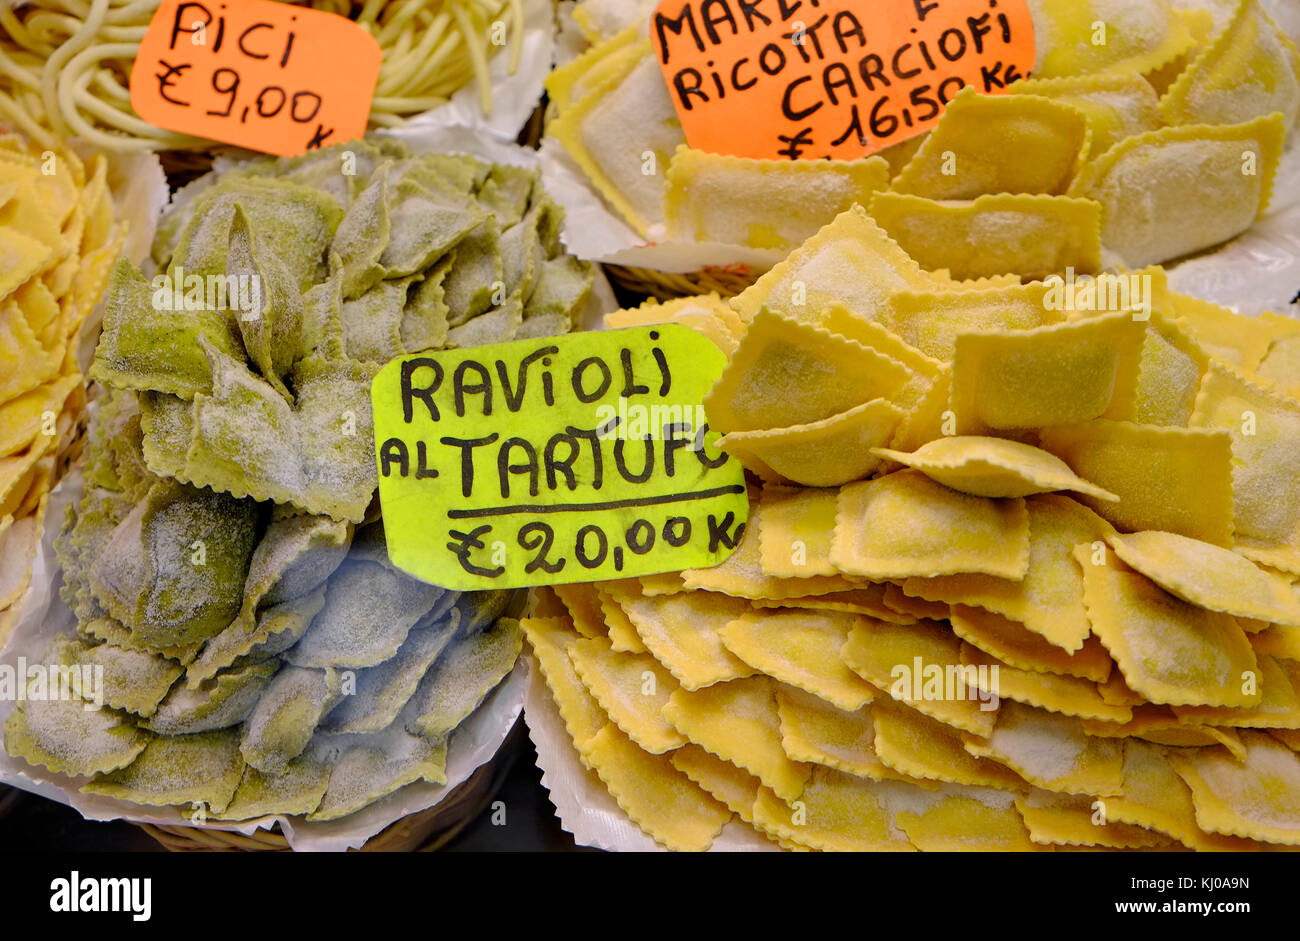 ravioli pasta on display in shop, florence, italy - Stock Image